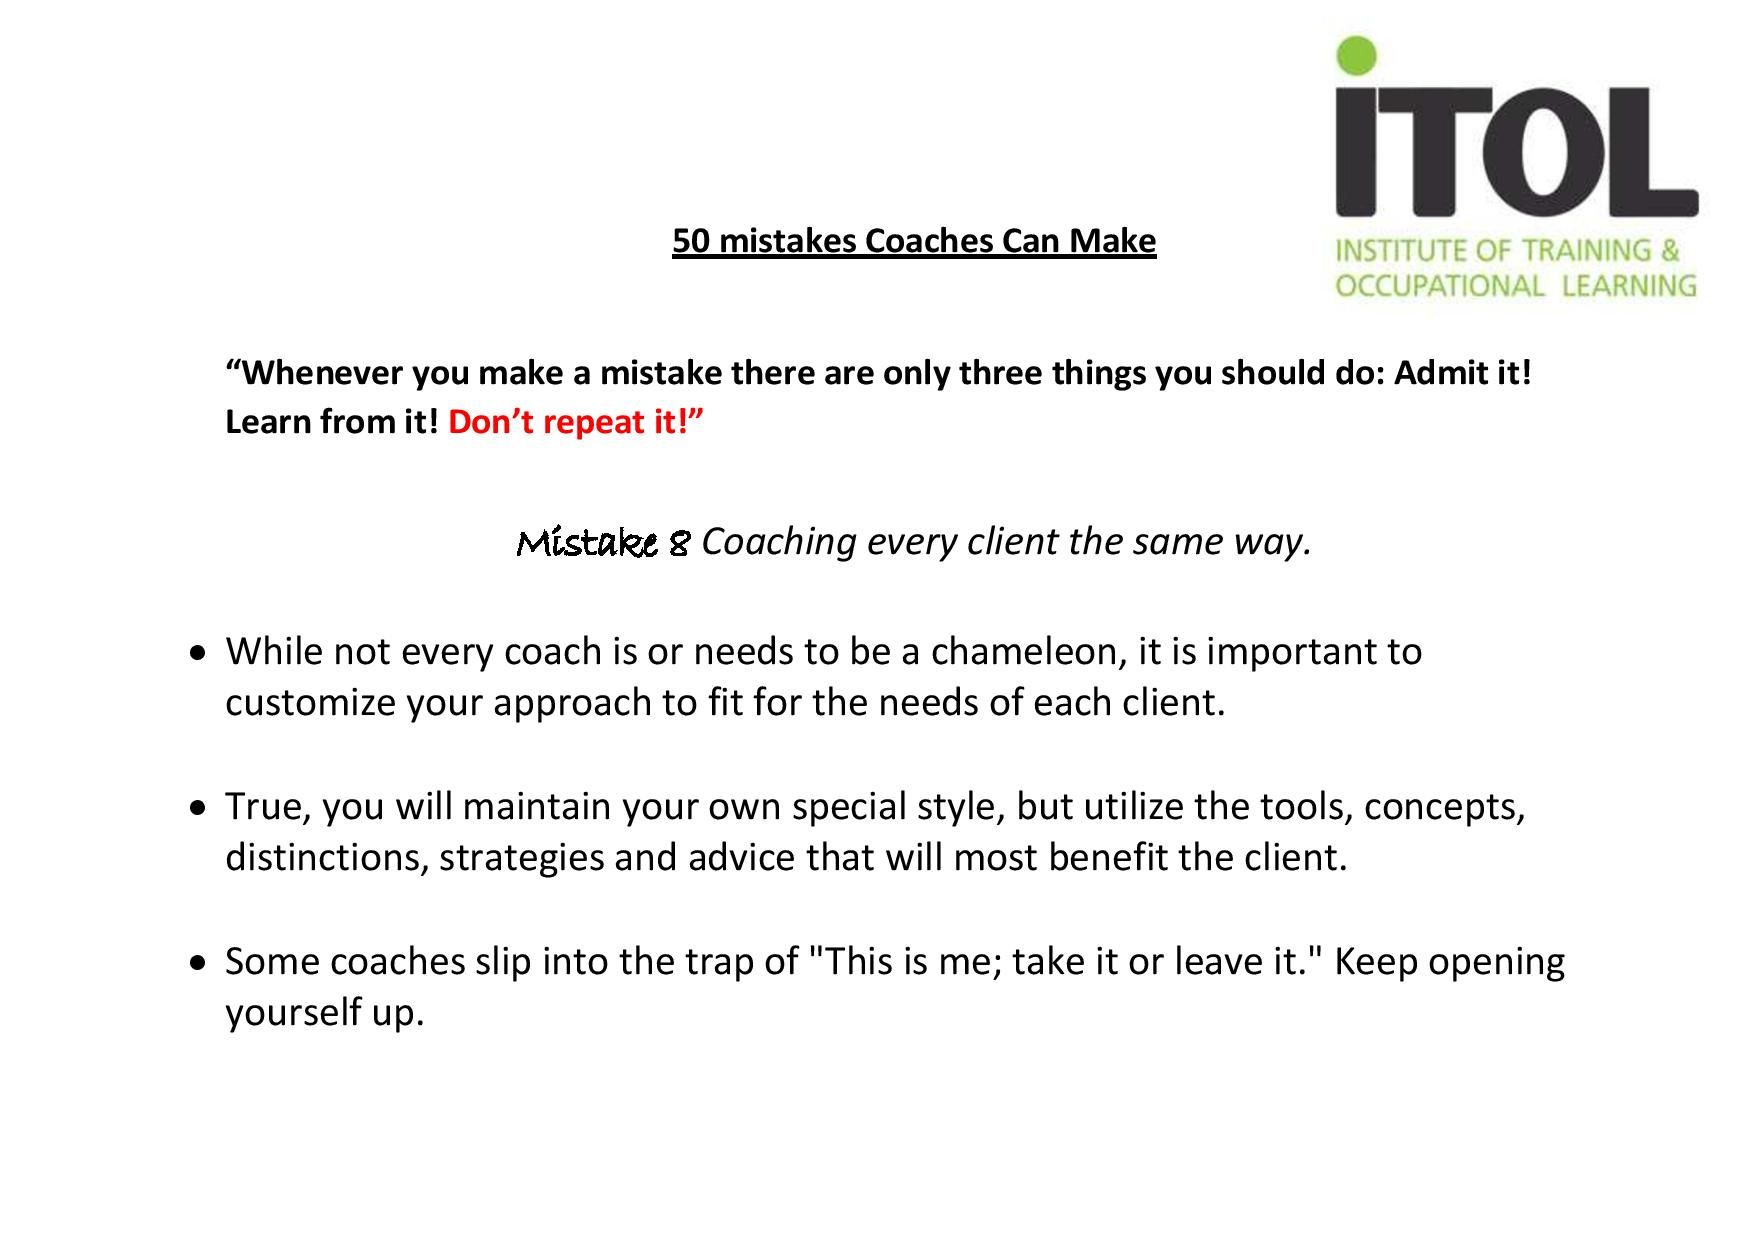 Mistake No.8 from our 50 Mistakes Coaches Can Make!